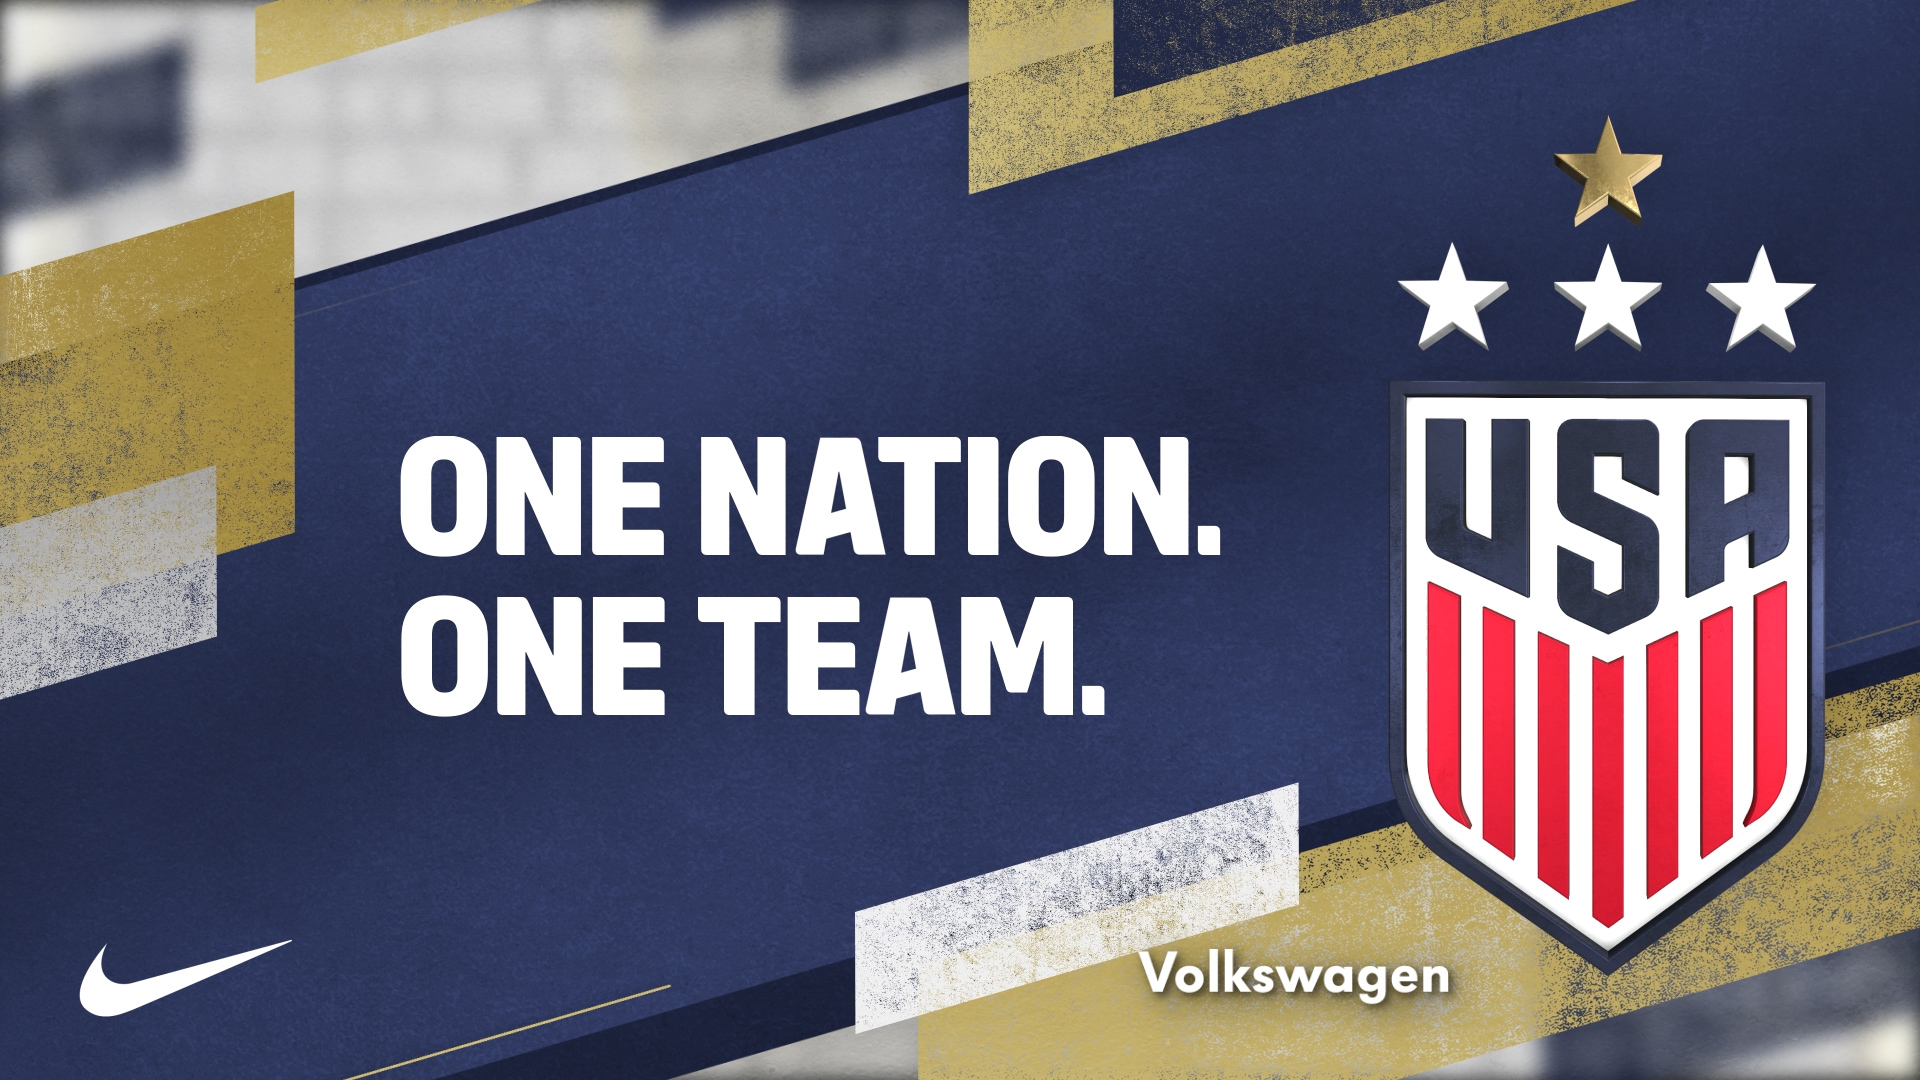 US Soccer One Nation One Team